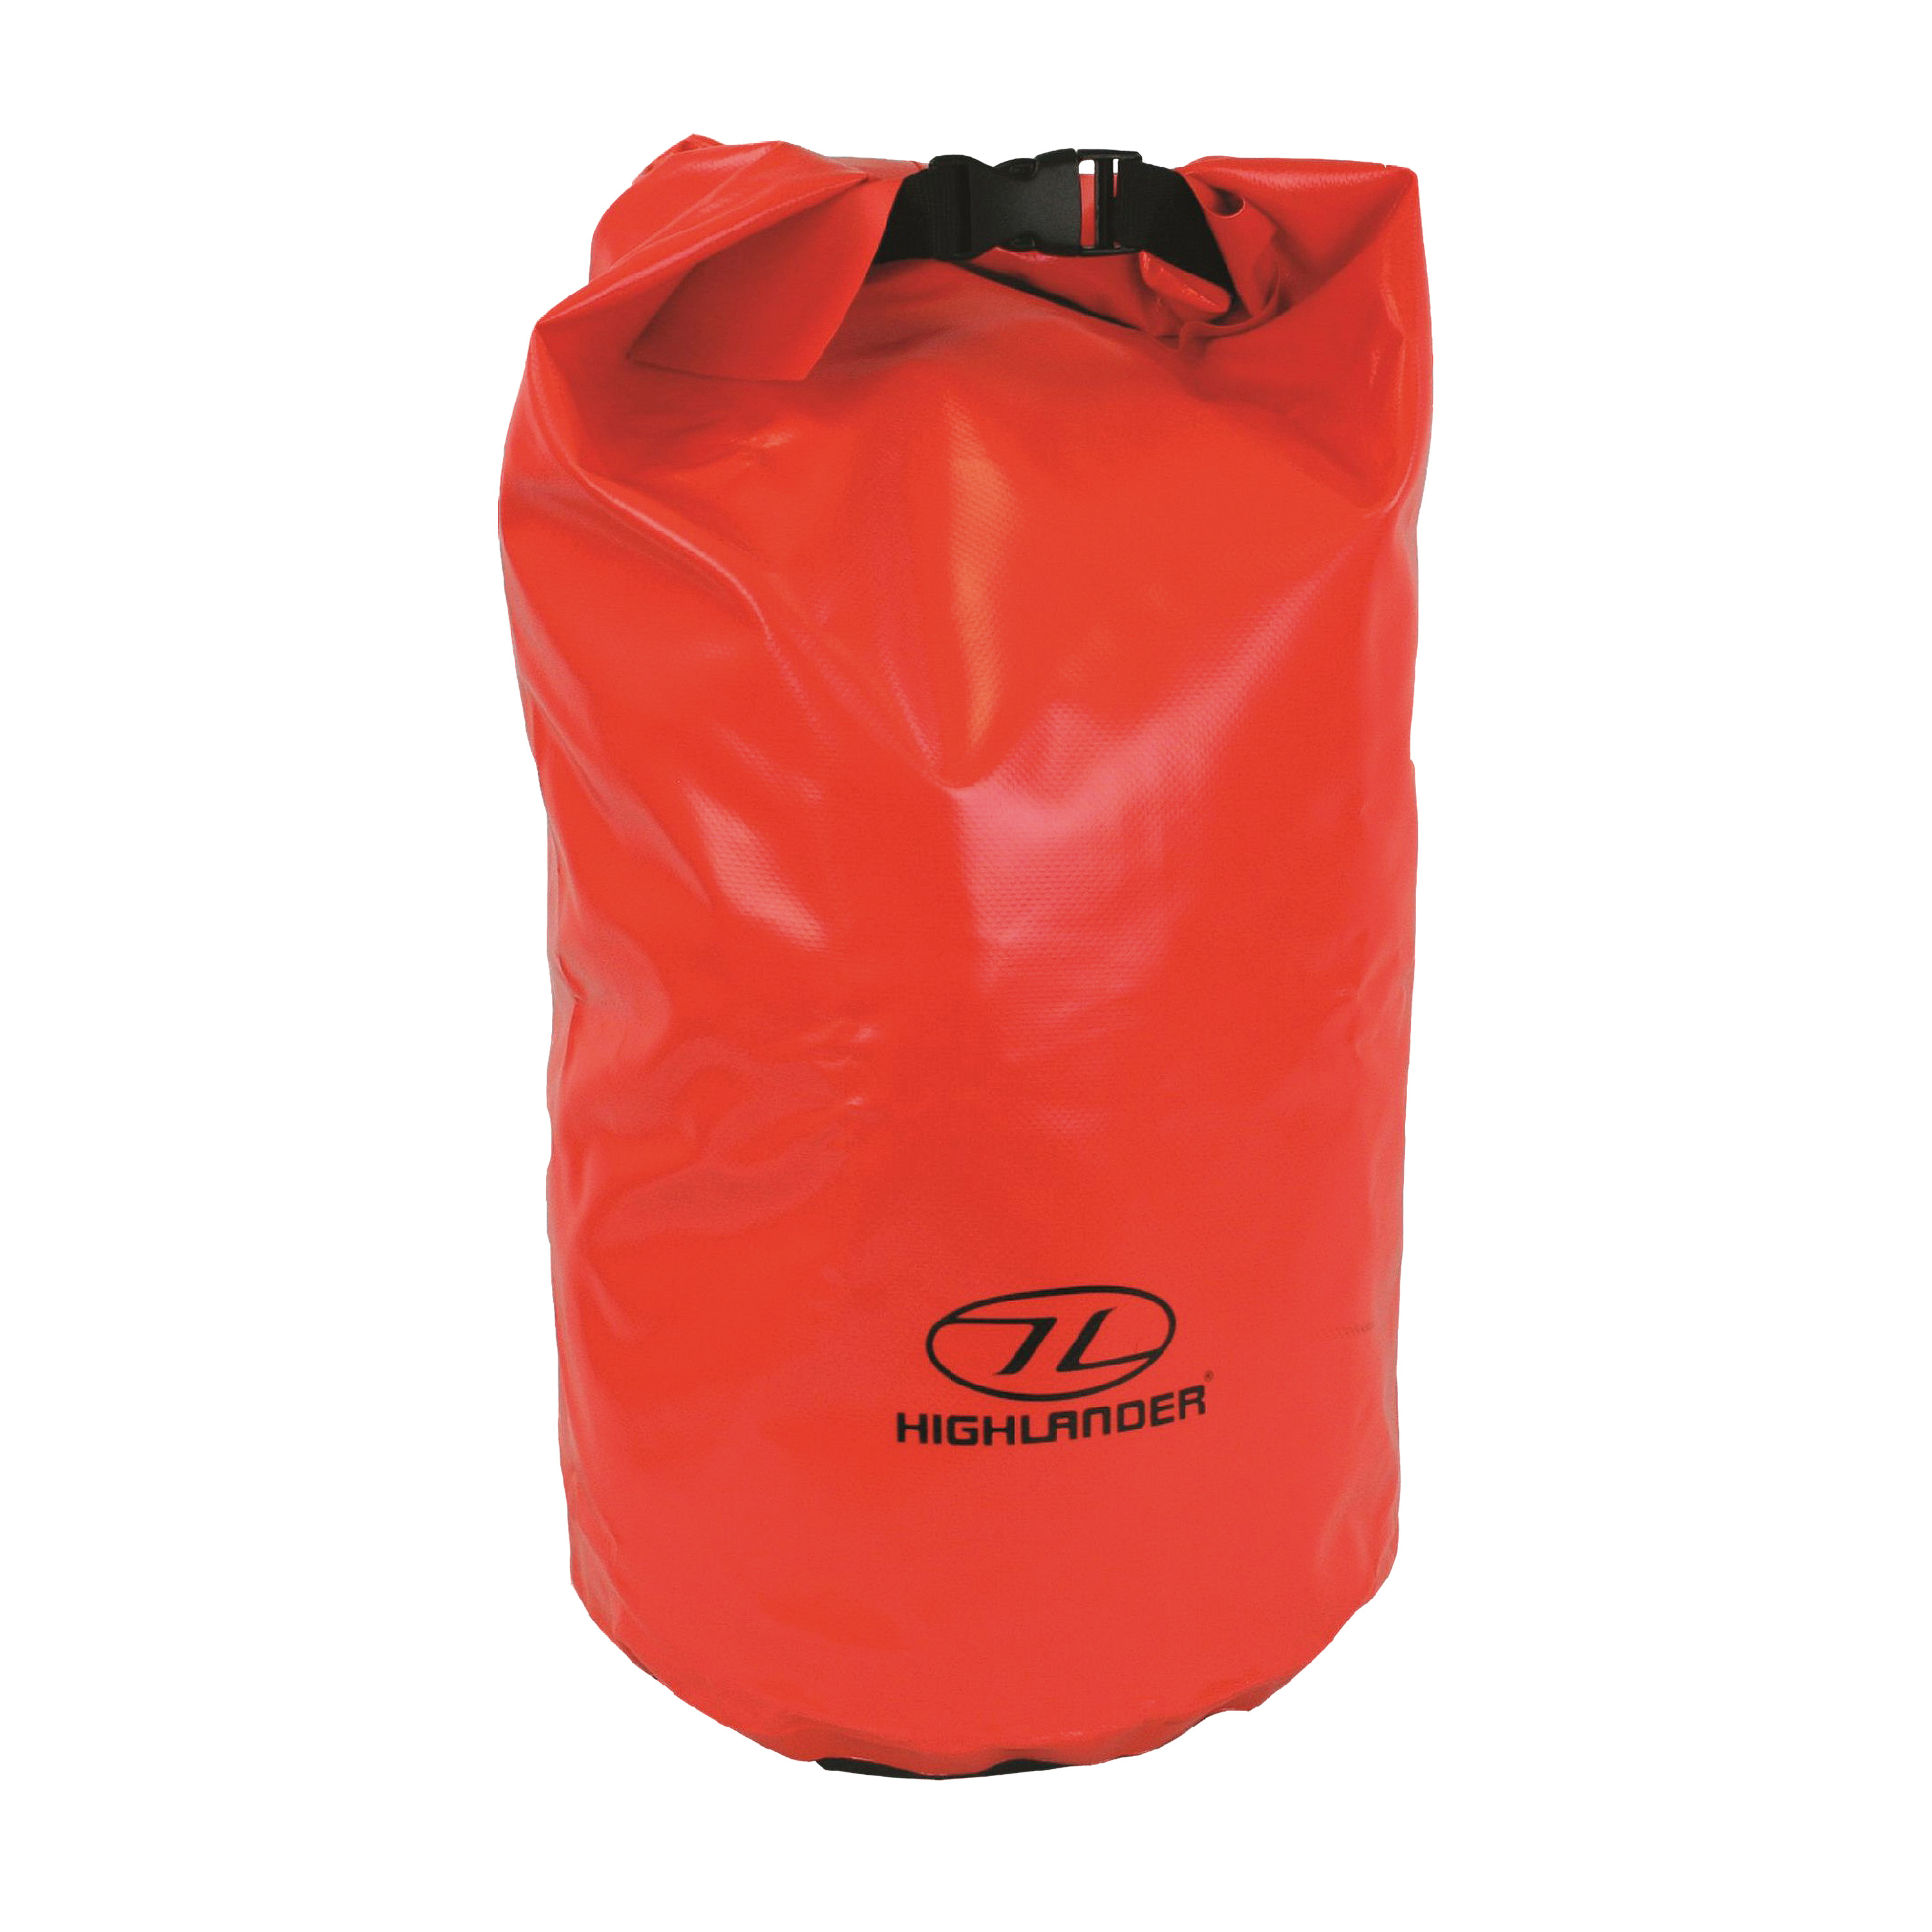 Highlander PVC Packsack wasserfest 30L orange